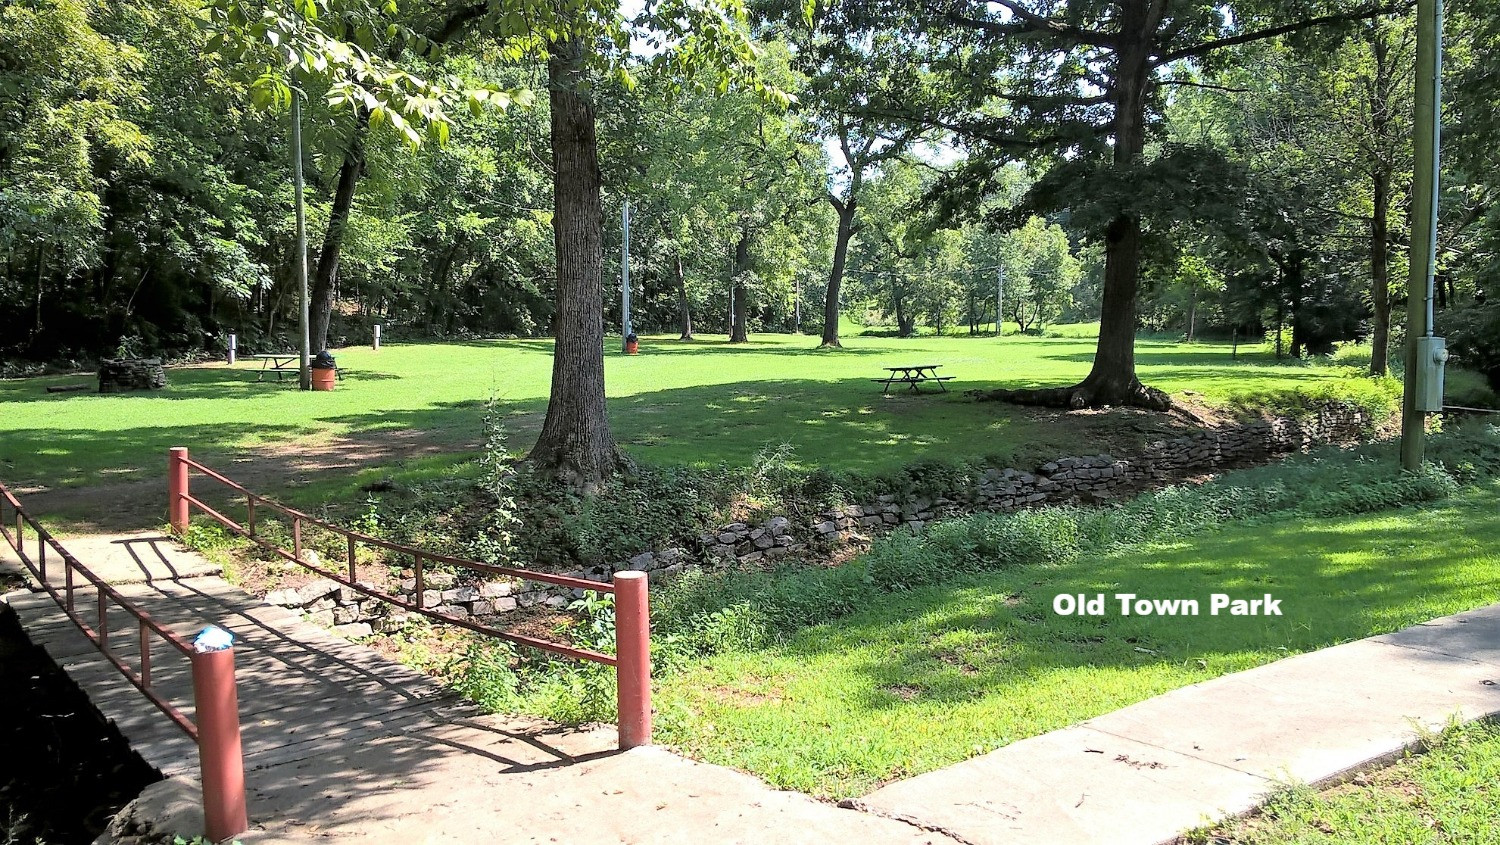 Green Space at Old Town Park